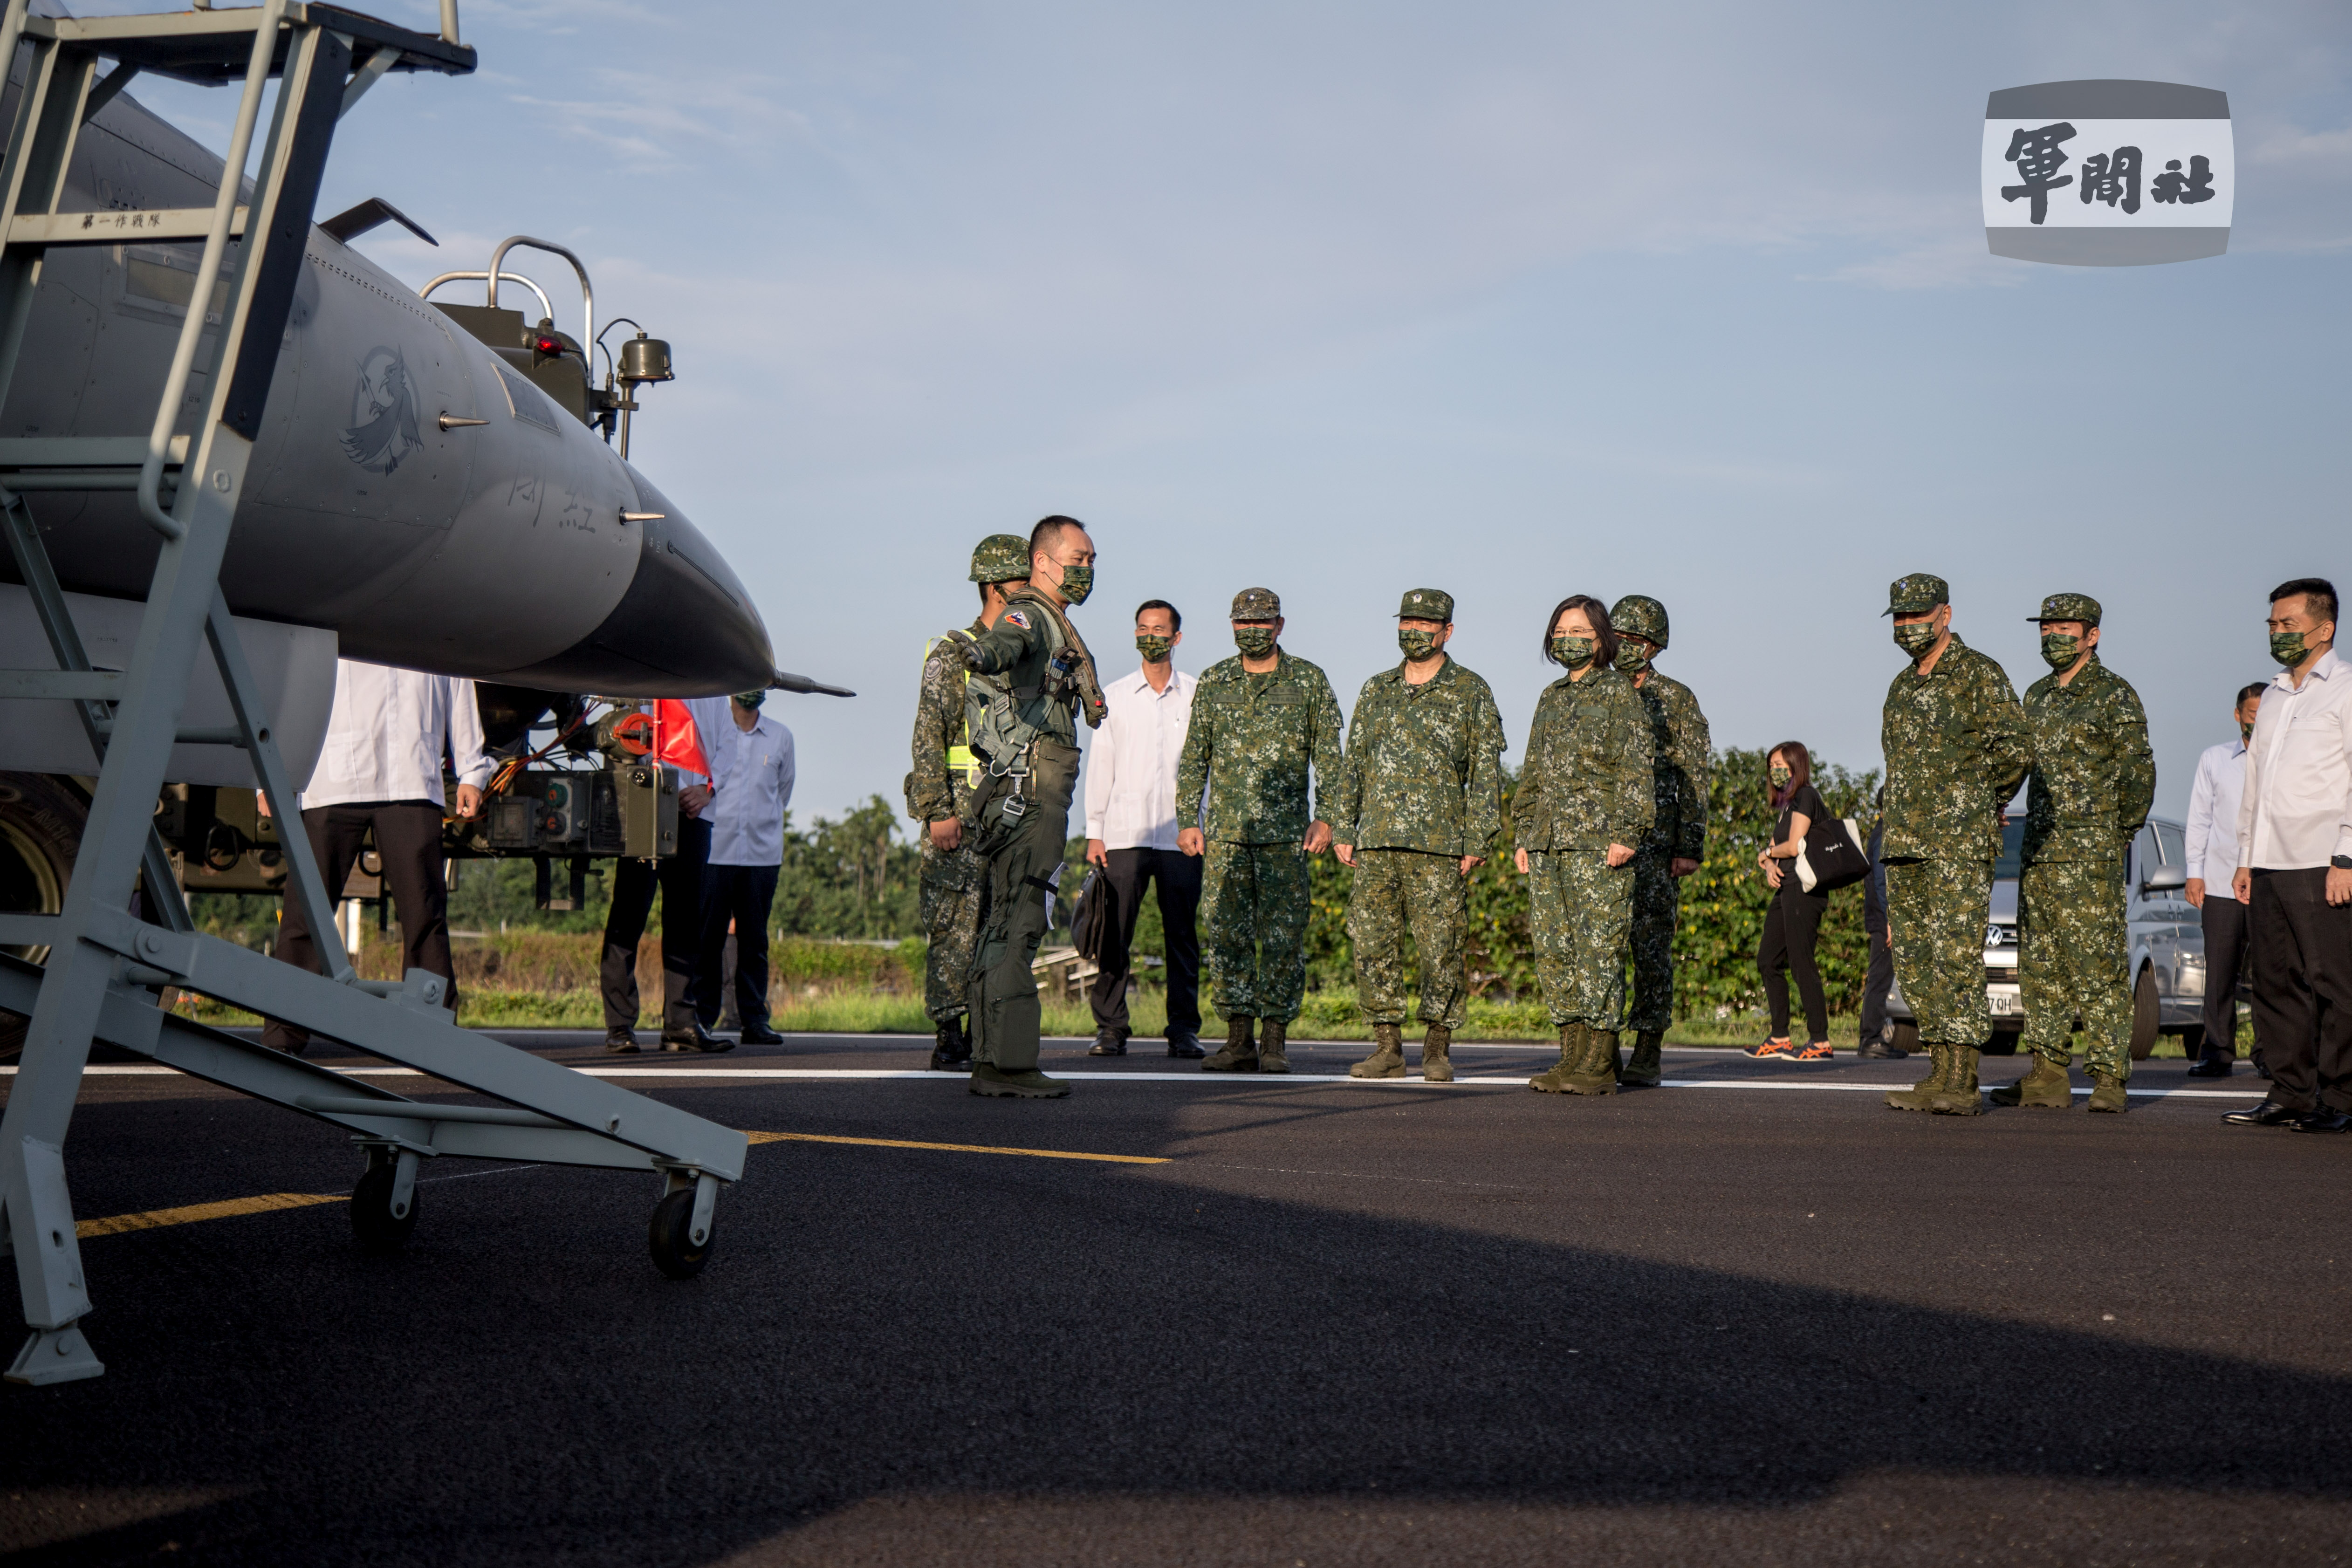 President Tsai Ing-wen attends a Taiwanese Air Force fighter jets take-off and landing drill, as part of the annual Han Kuang drill, in Pingtung, Taiwan, 15 September 2021. TAIWAN MILITARY NEWS AGENCY/Handout via REUTERS